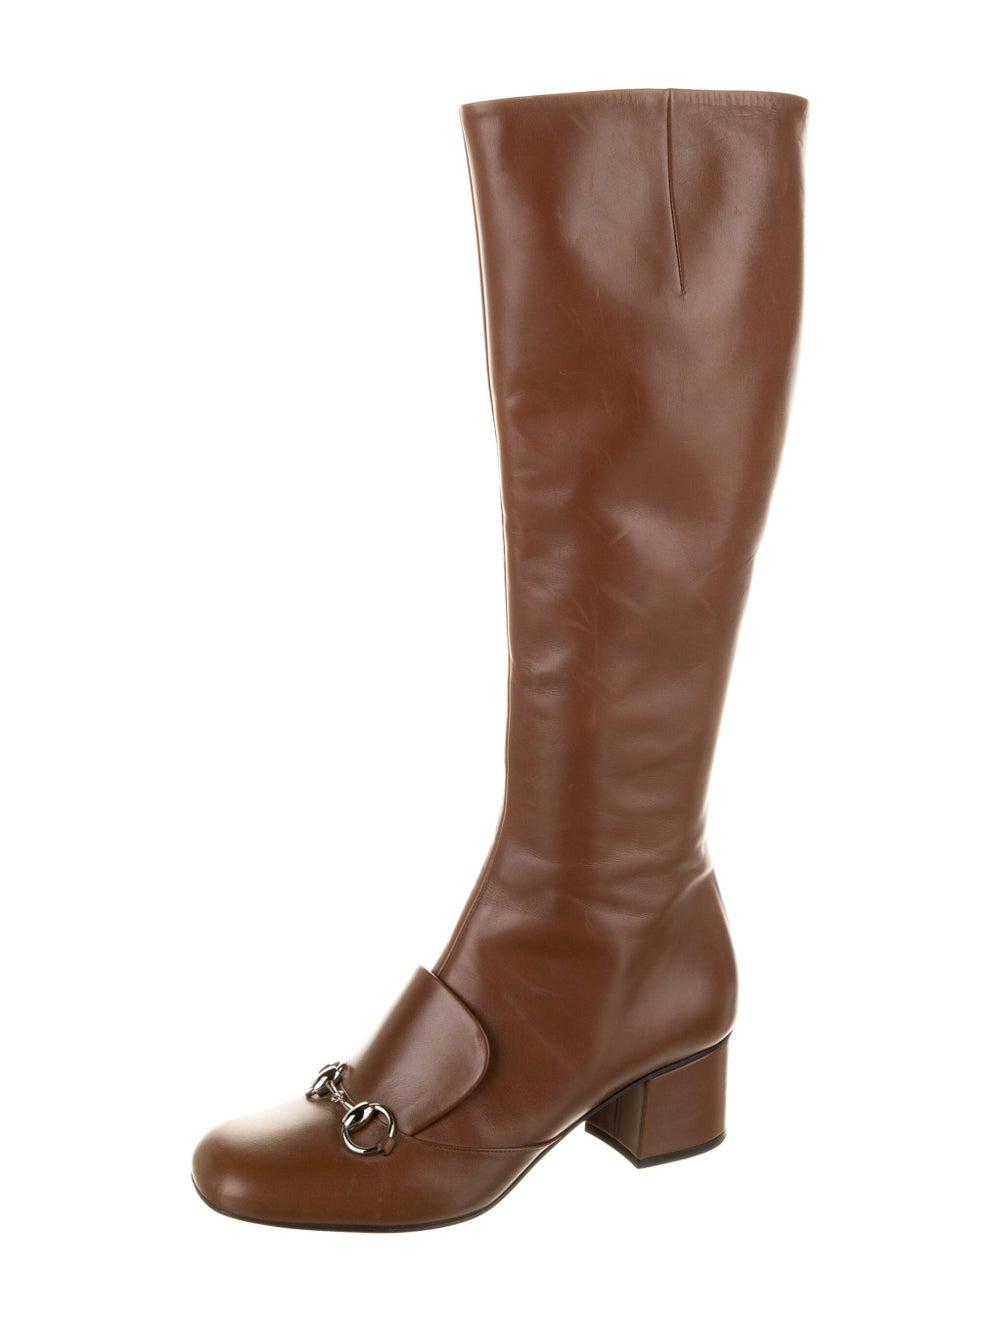 Gucci Horsebit Accent Leather Riding Boots Brown - image 2